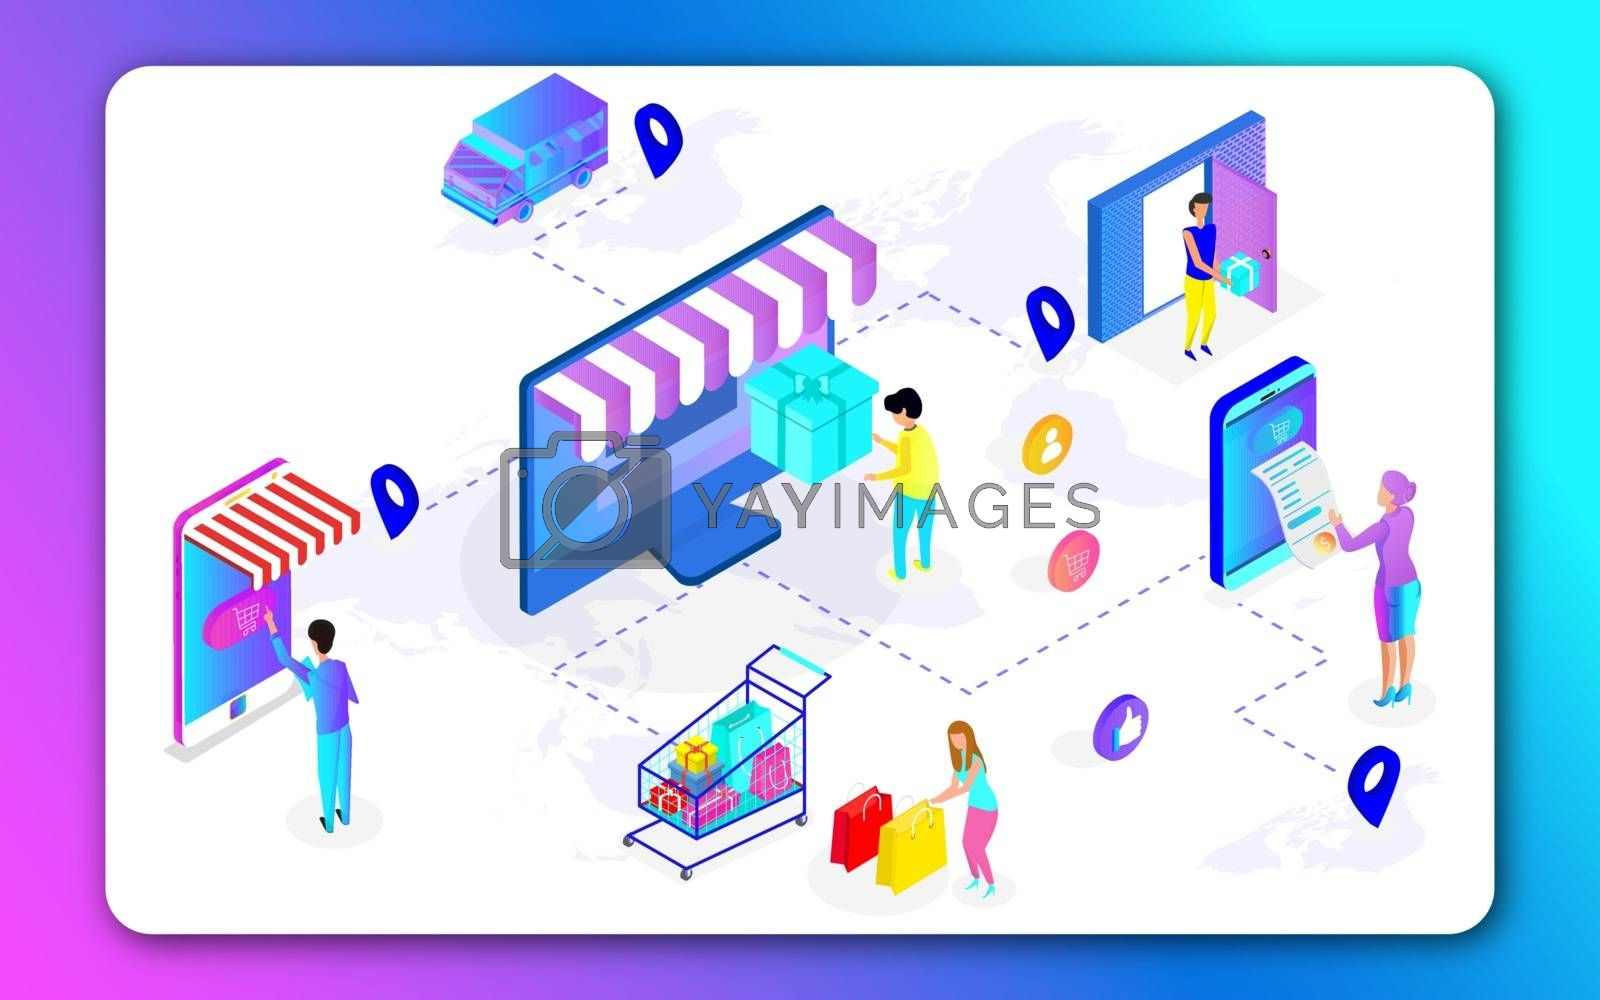 Royalty free image of 3D illustration of Online shopping app in computer and smartphon by aispl